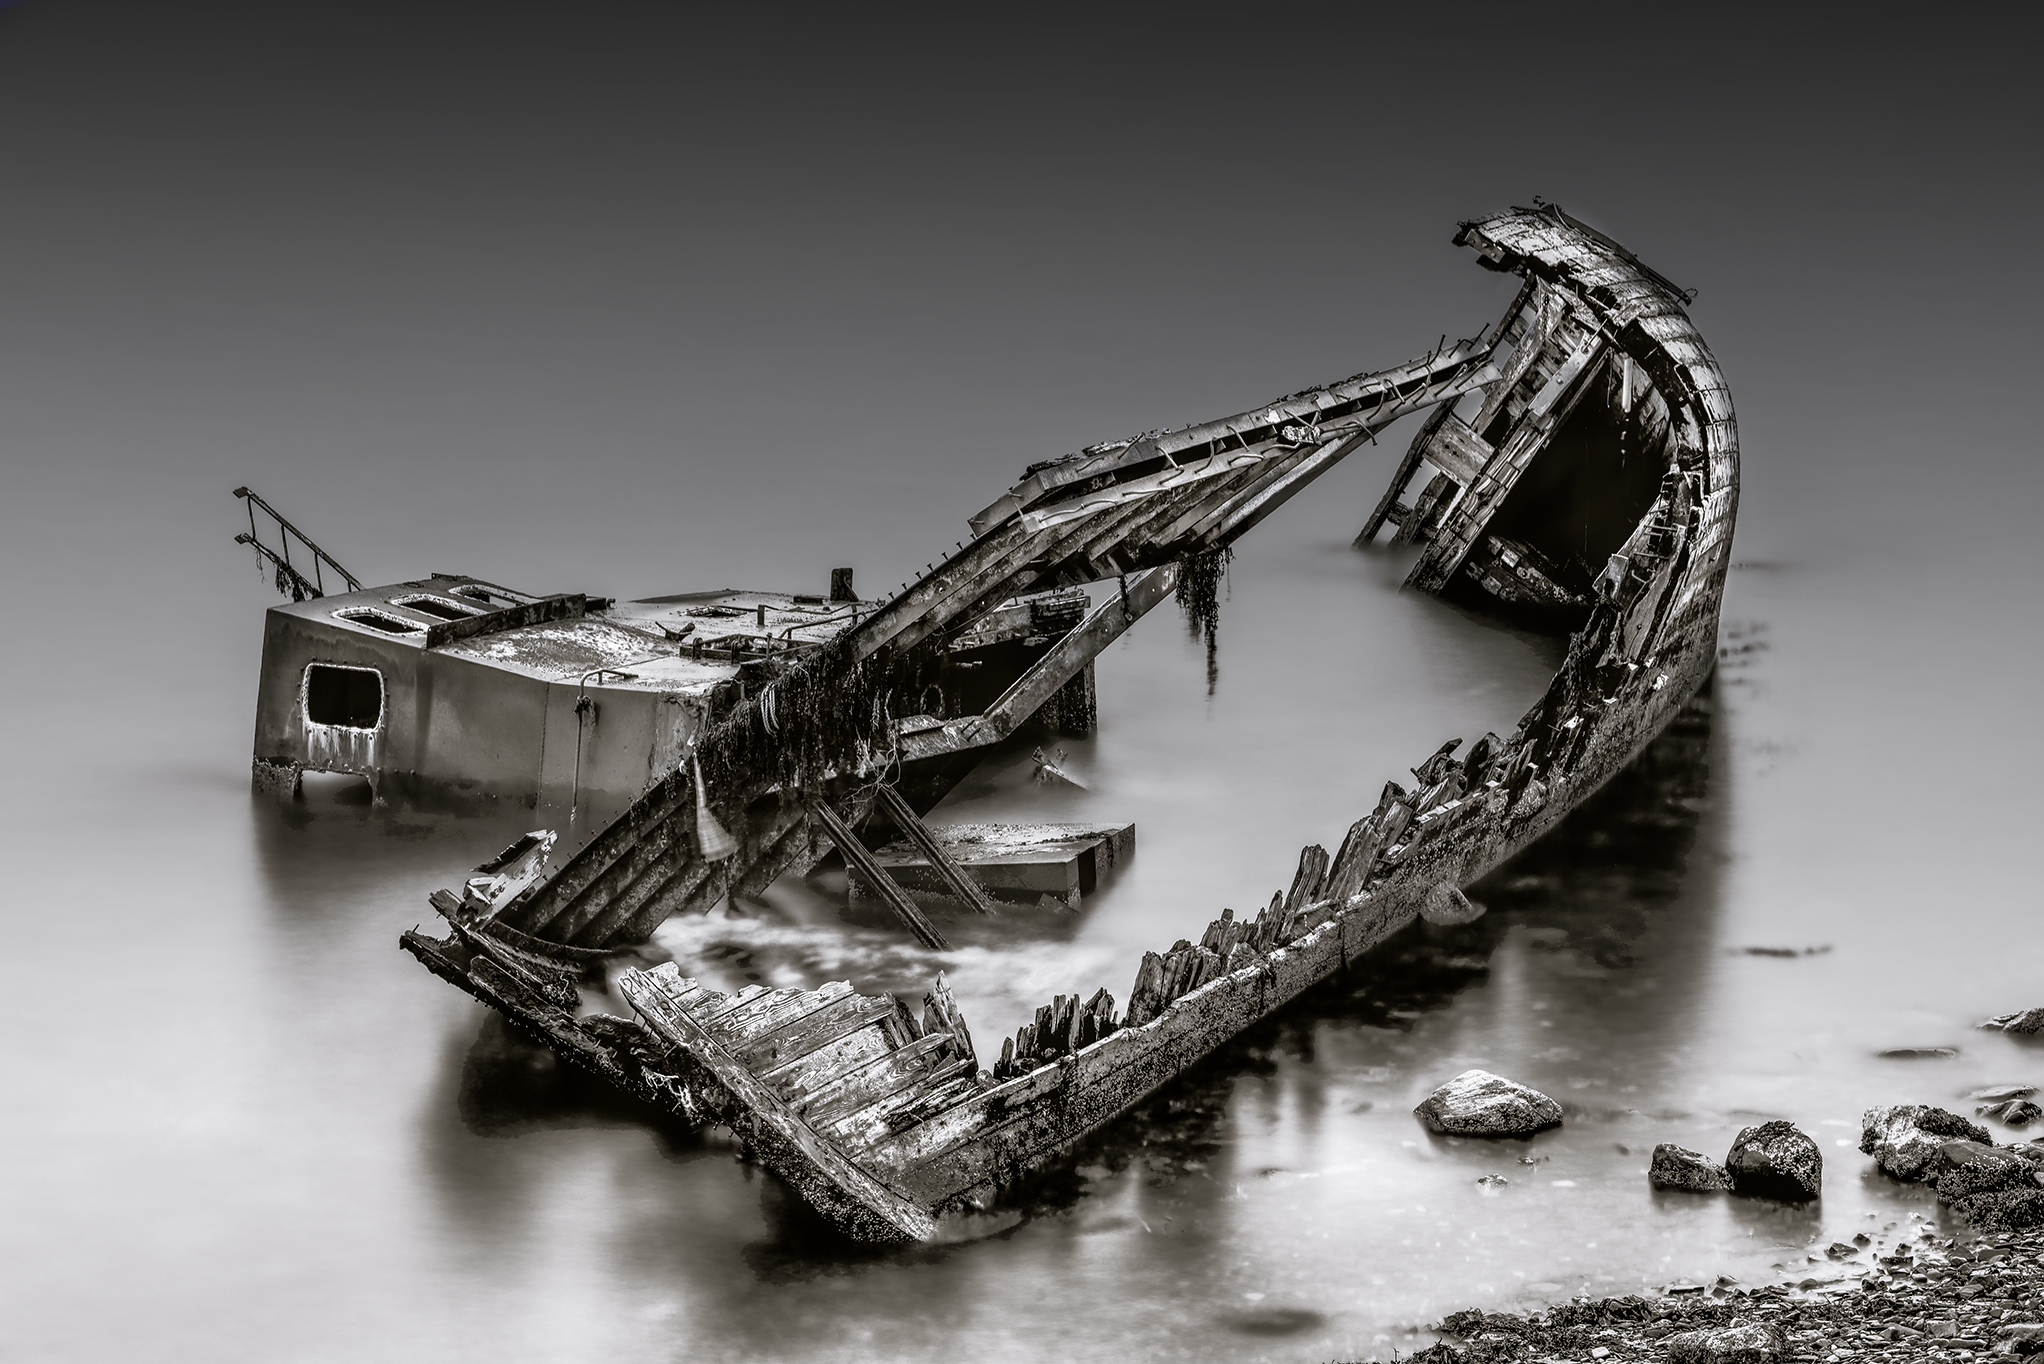 The wreck of the Dayspring